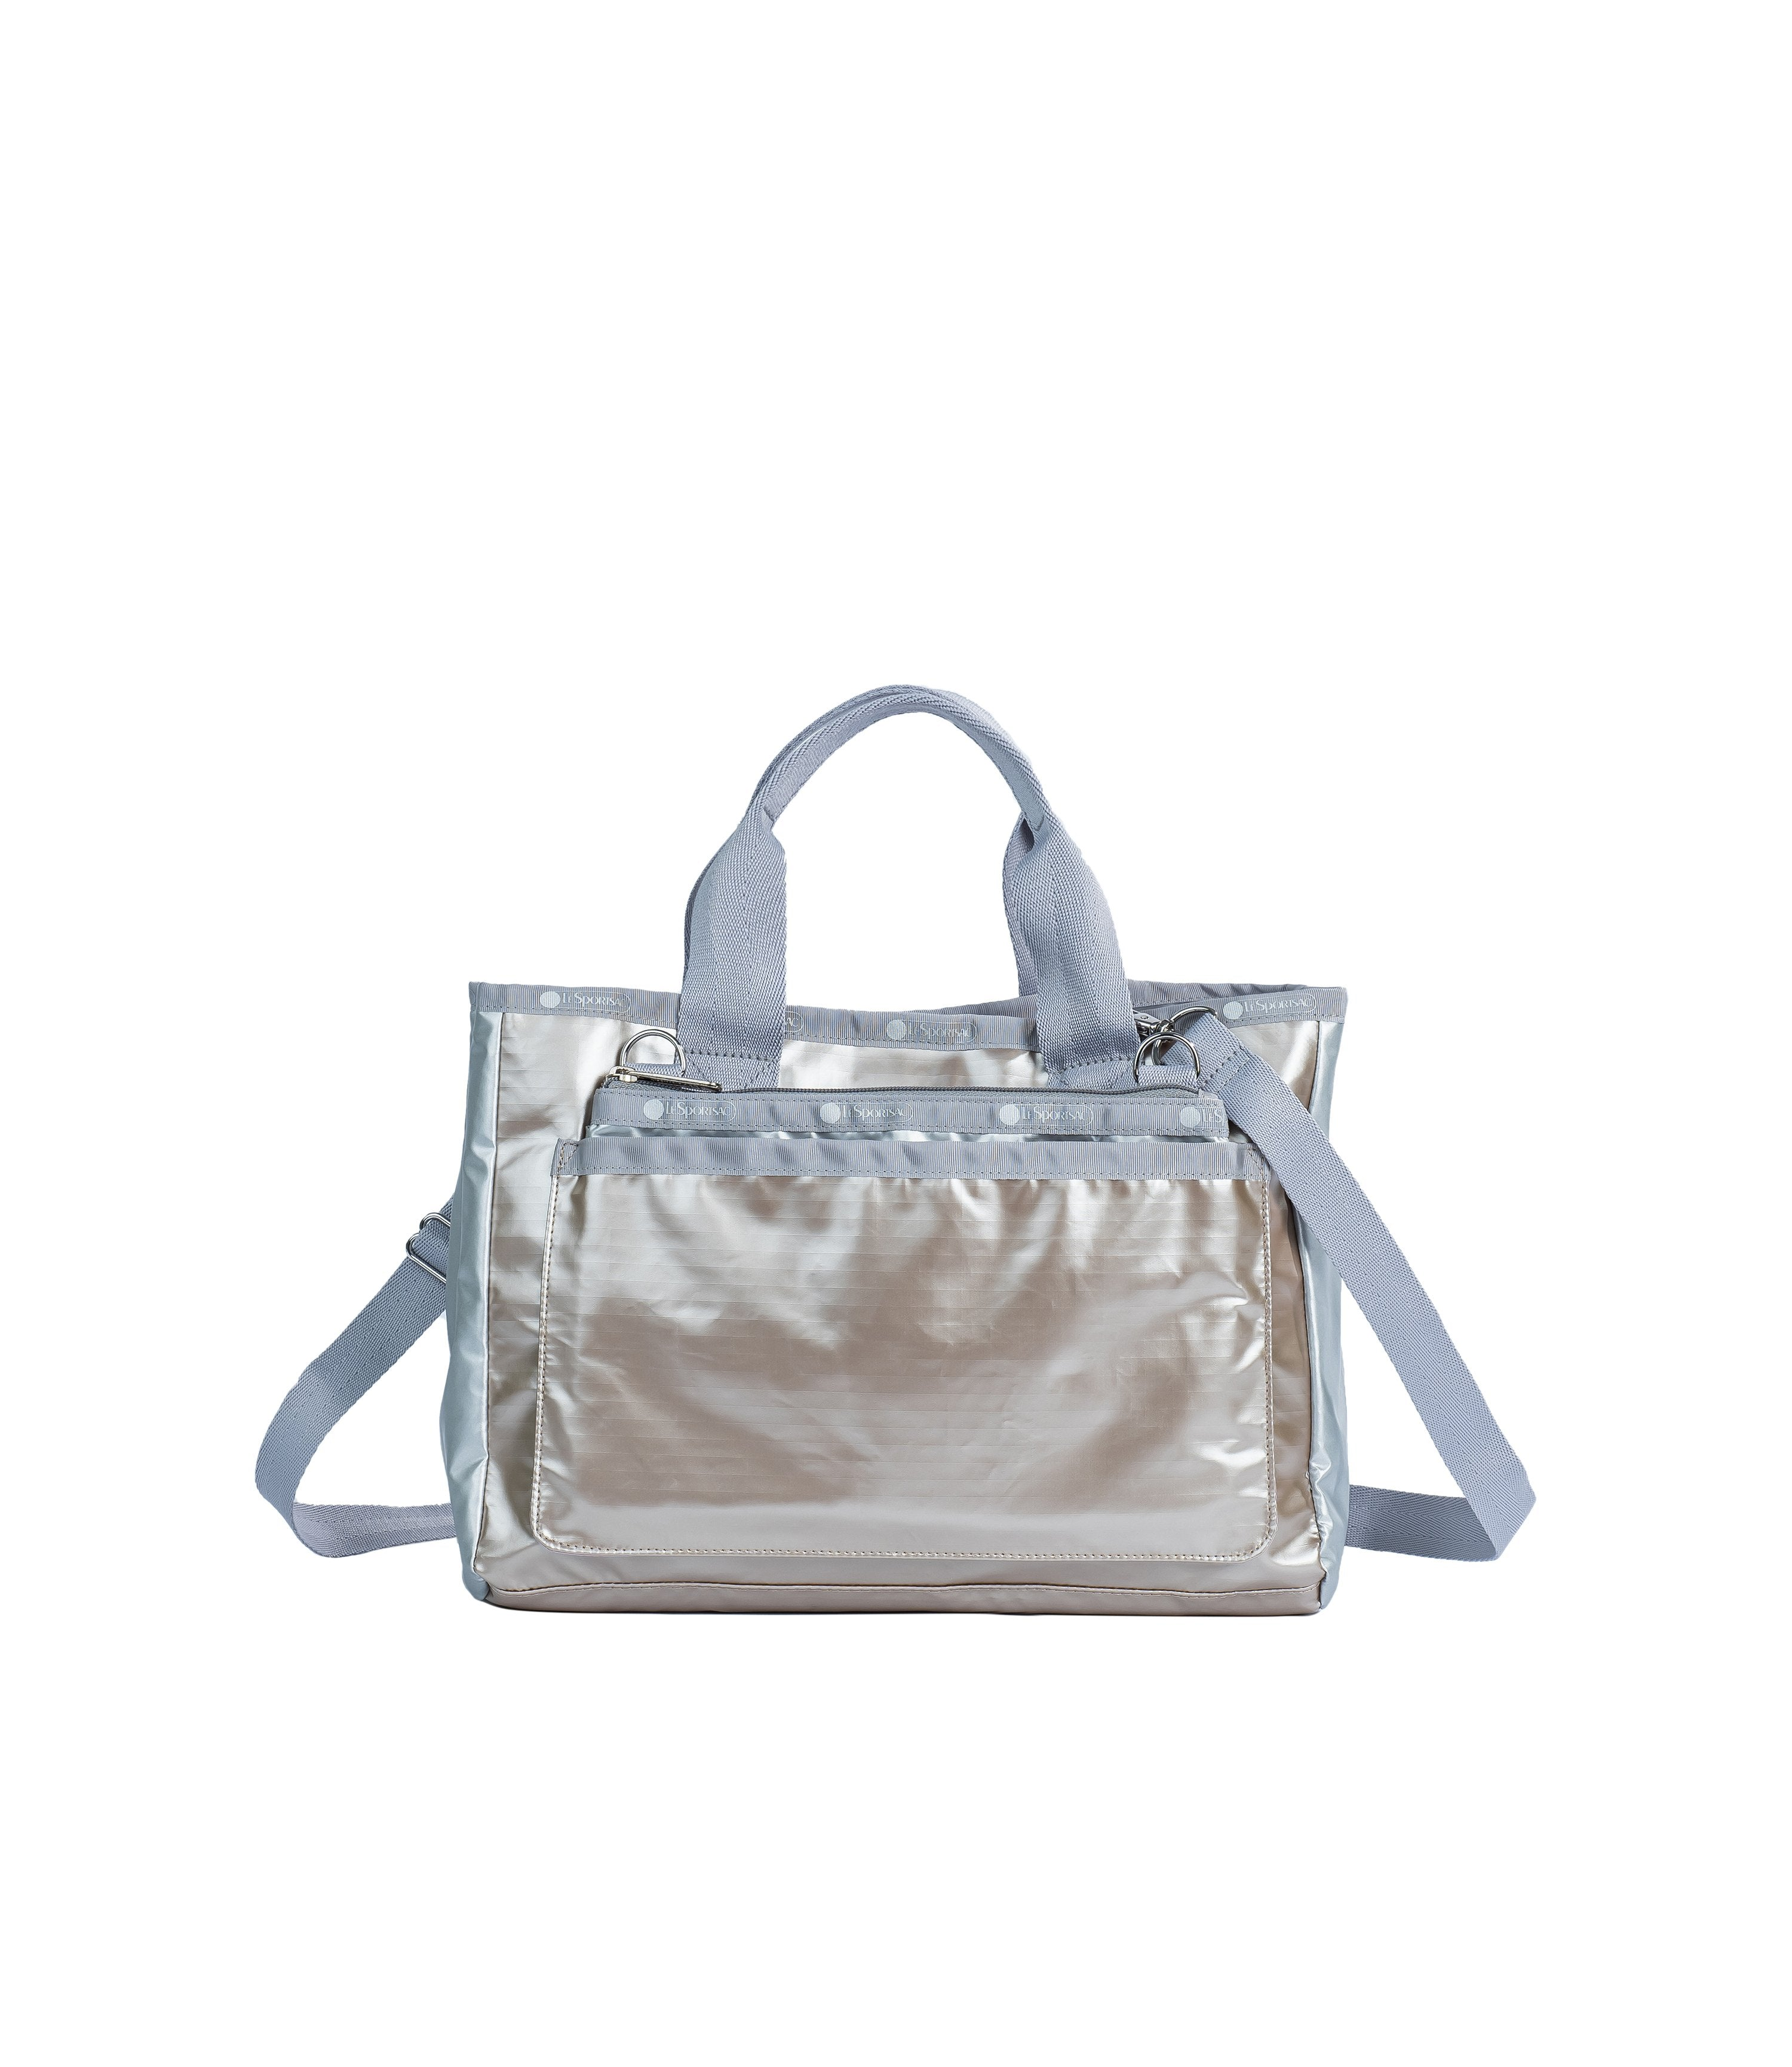 LeSportsac - Totes - Convertible Tote - Opal Mist Metallic